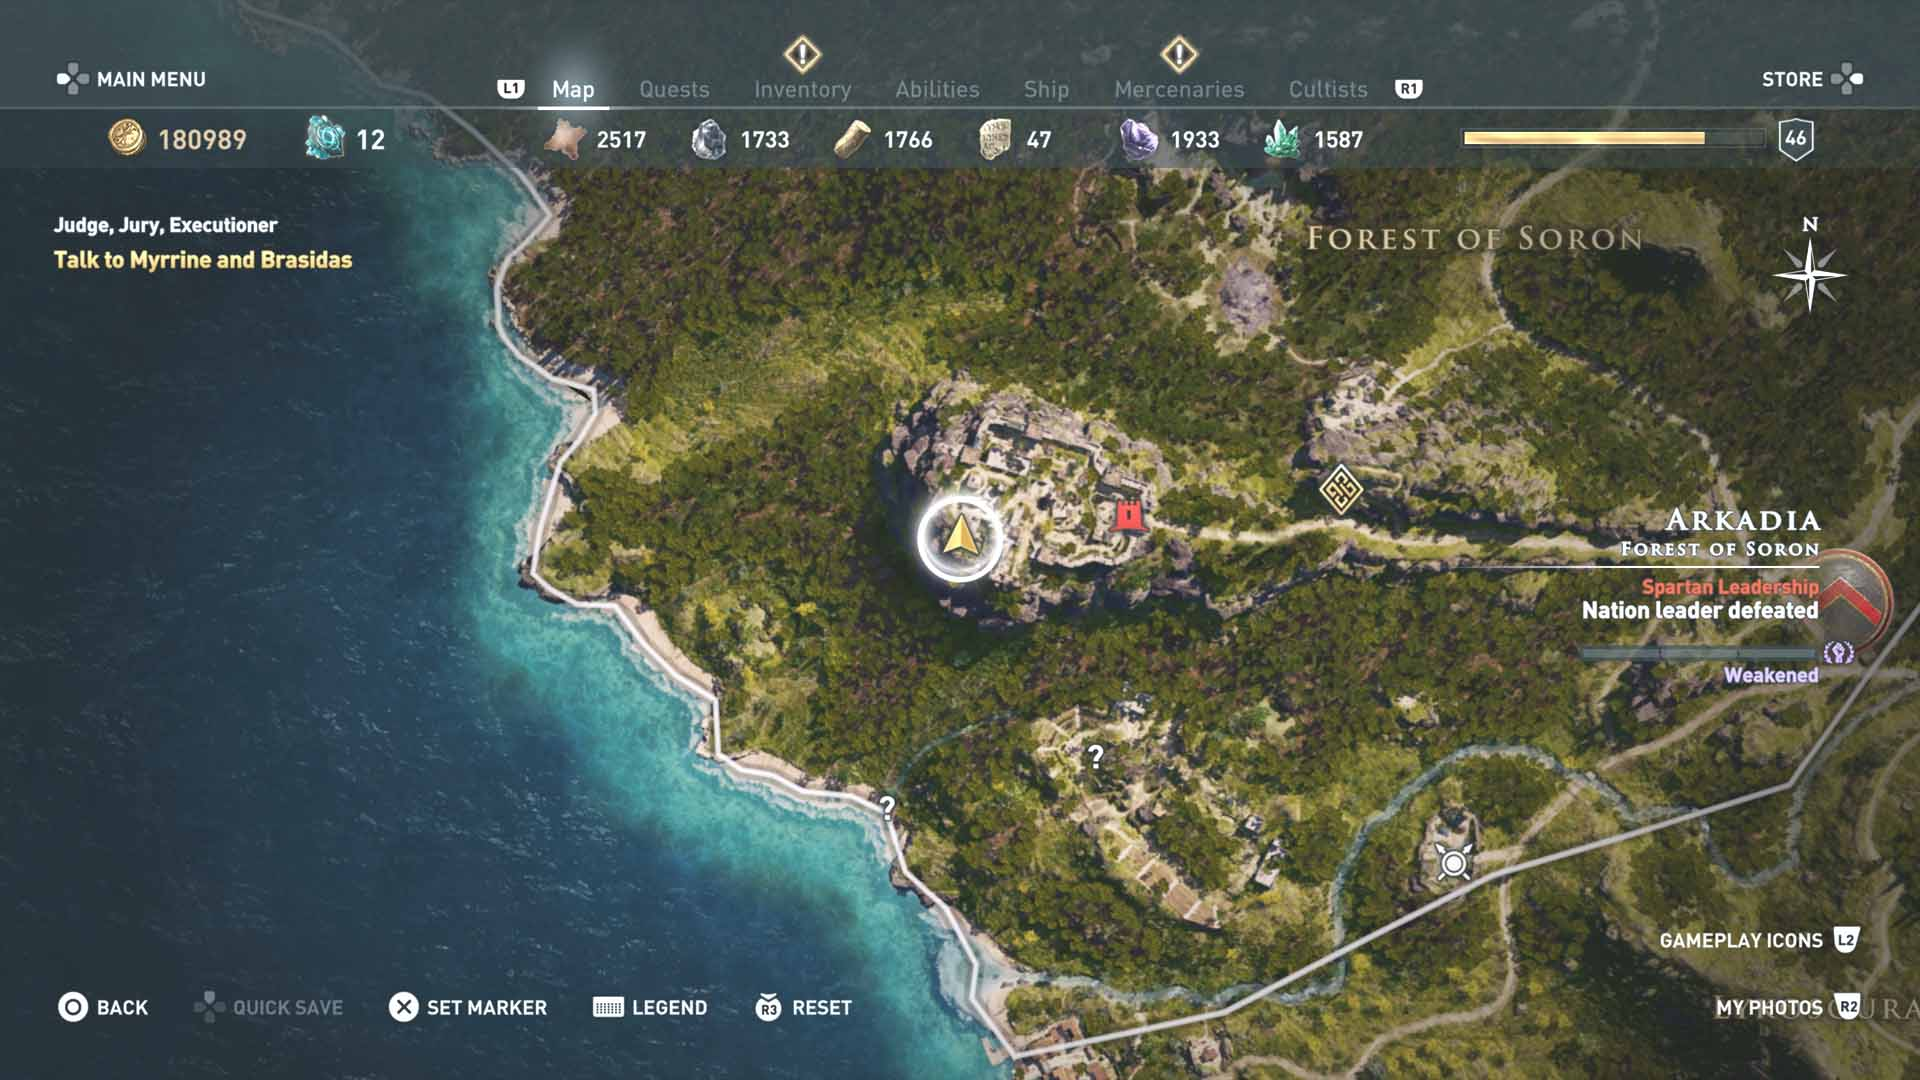 All Loot Treasure And Ancient Tablet Locations Arcadia Part 2 All Tombs Ainigmata And Loot Treasure Locations Assassin S Creed Odyssey